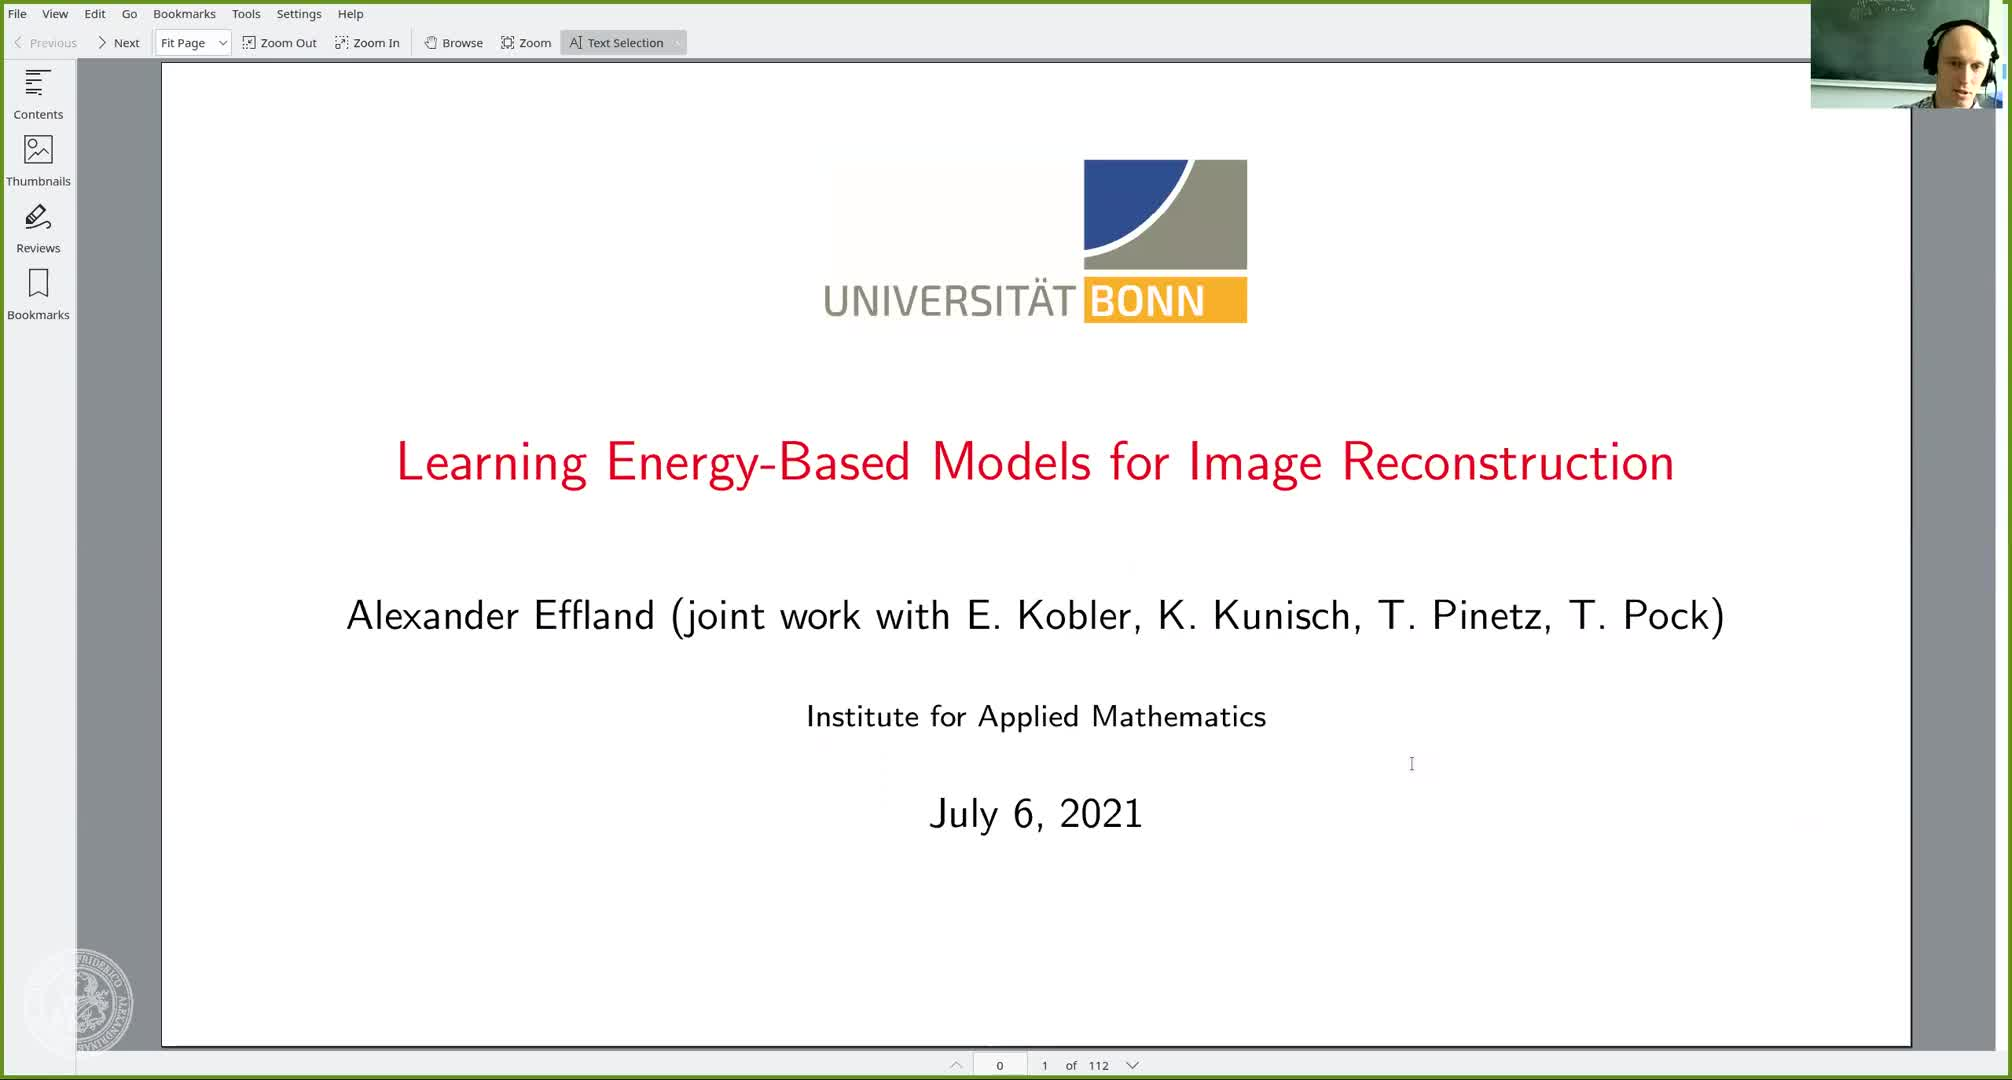 Learning Energy-Based Models for Image Reconstruction (A. Effland, University of Bonn, Germany) preview image